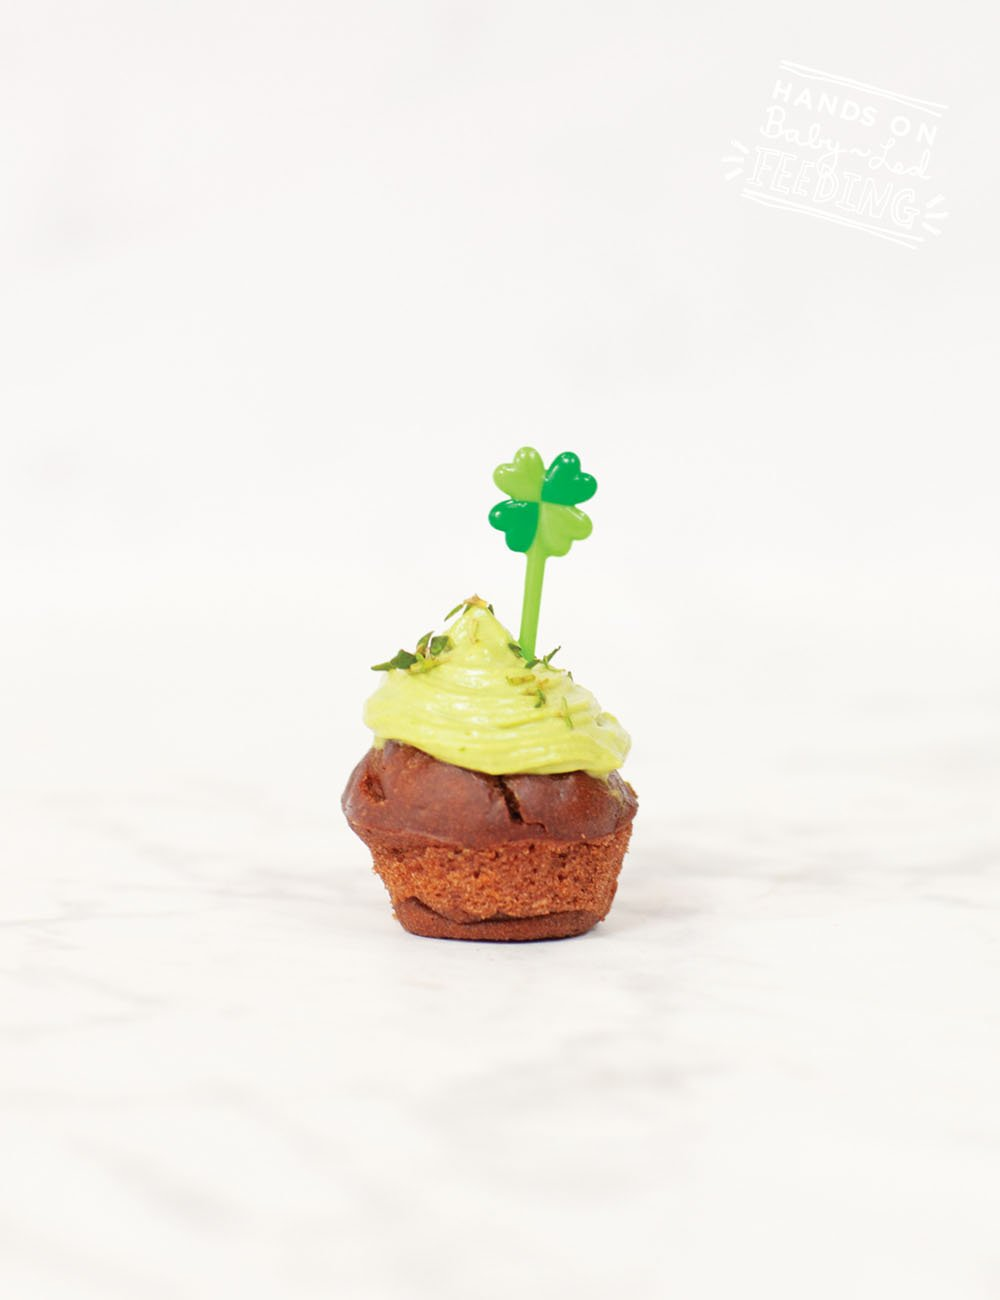 Chocolate Muffins with Green Frosting Recipe Images4